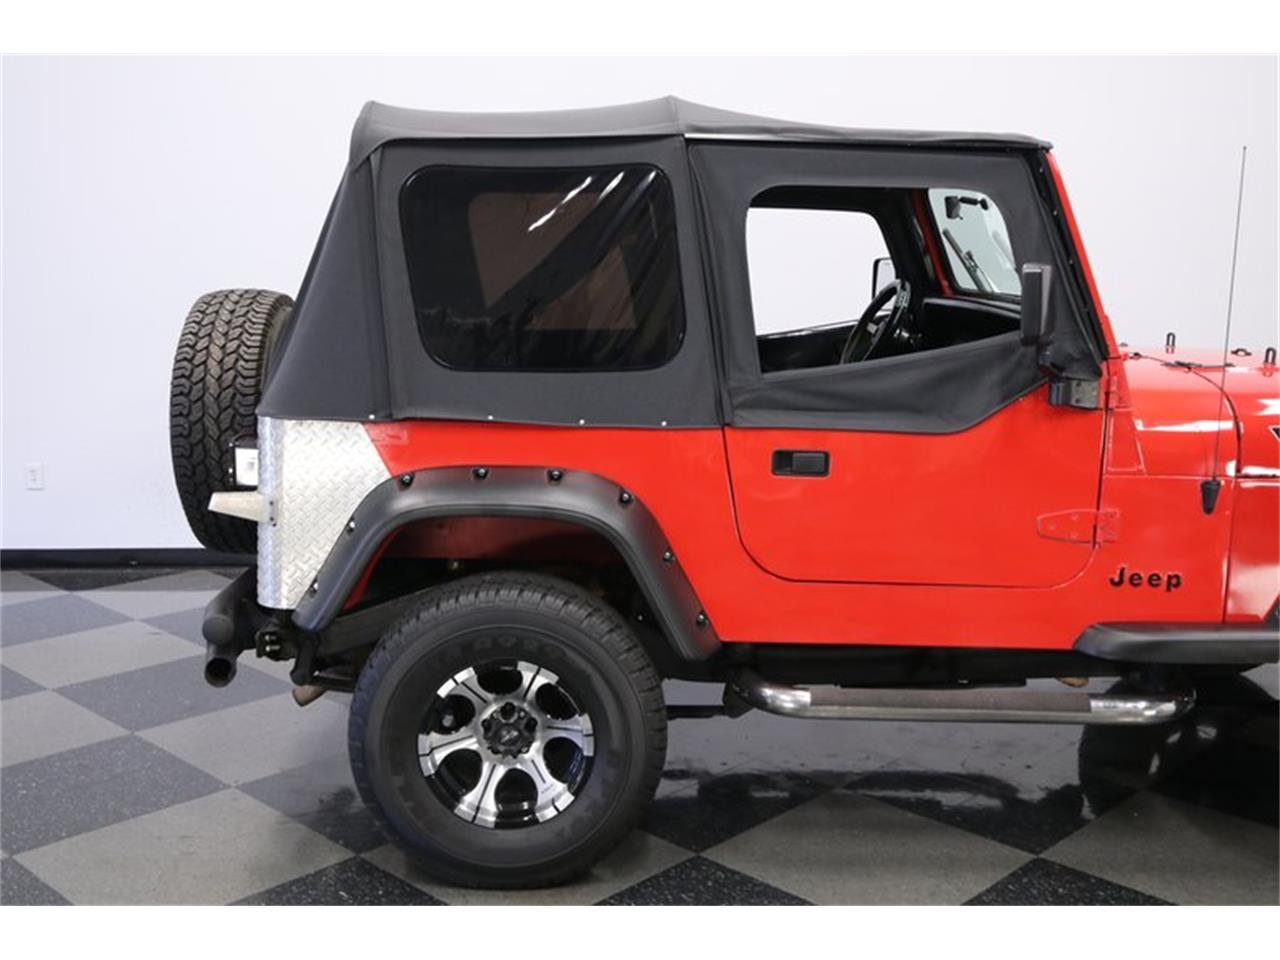 1989 Jeep Wrangler for sale in Lutz, FL – photo 33